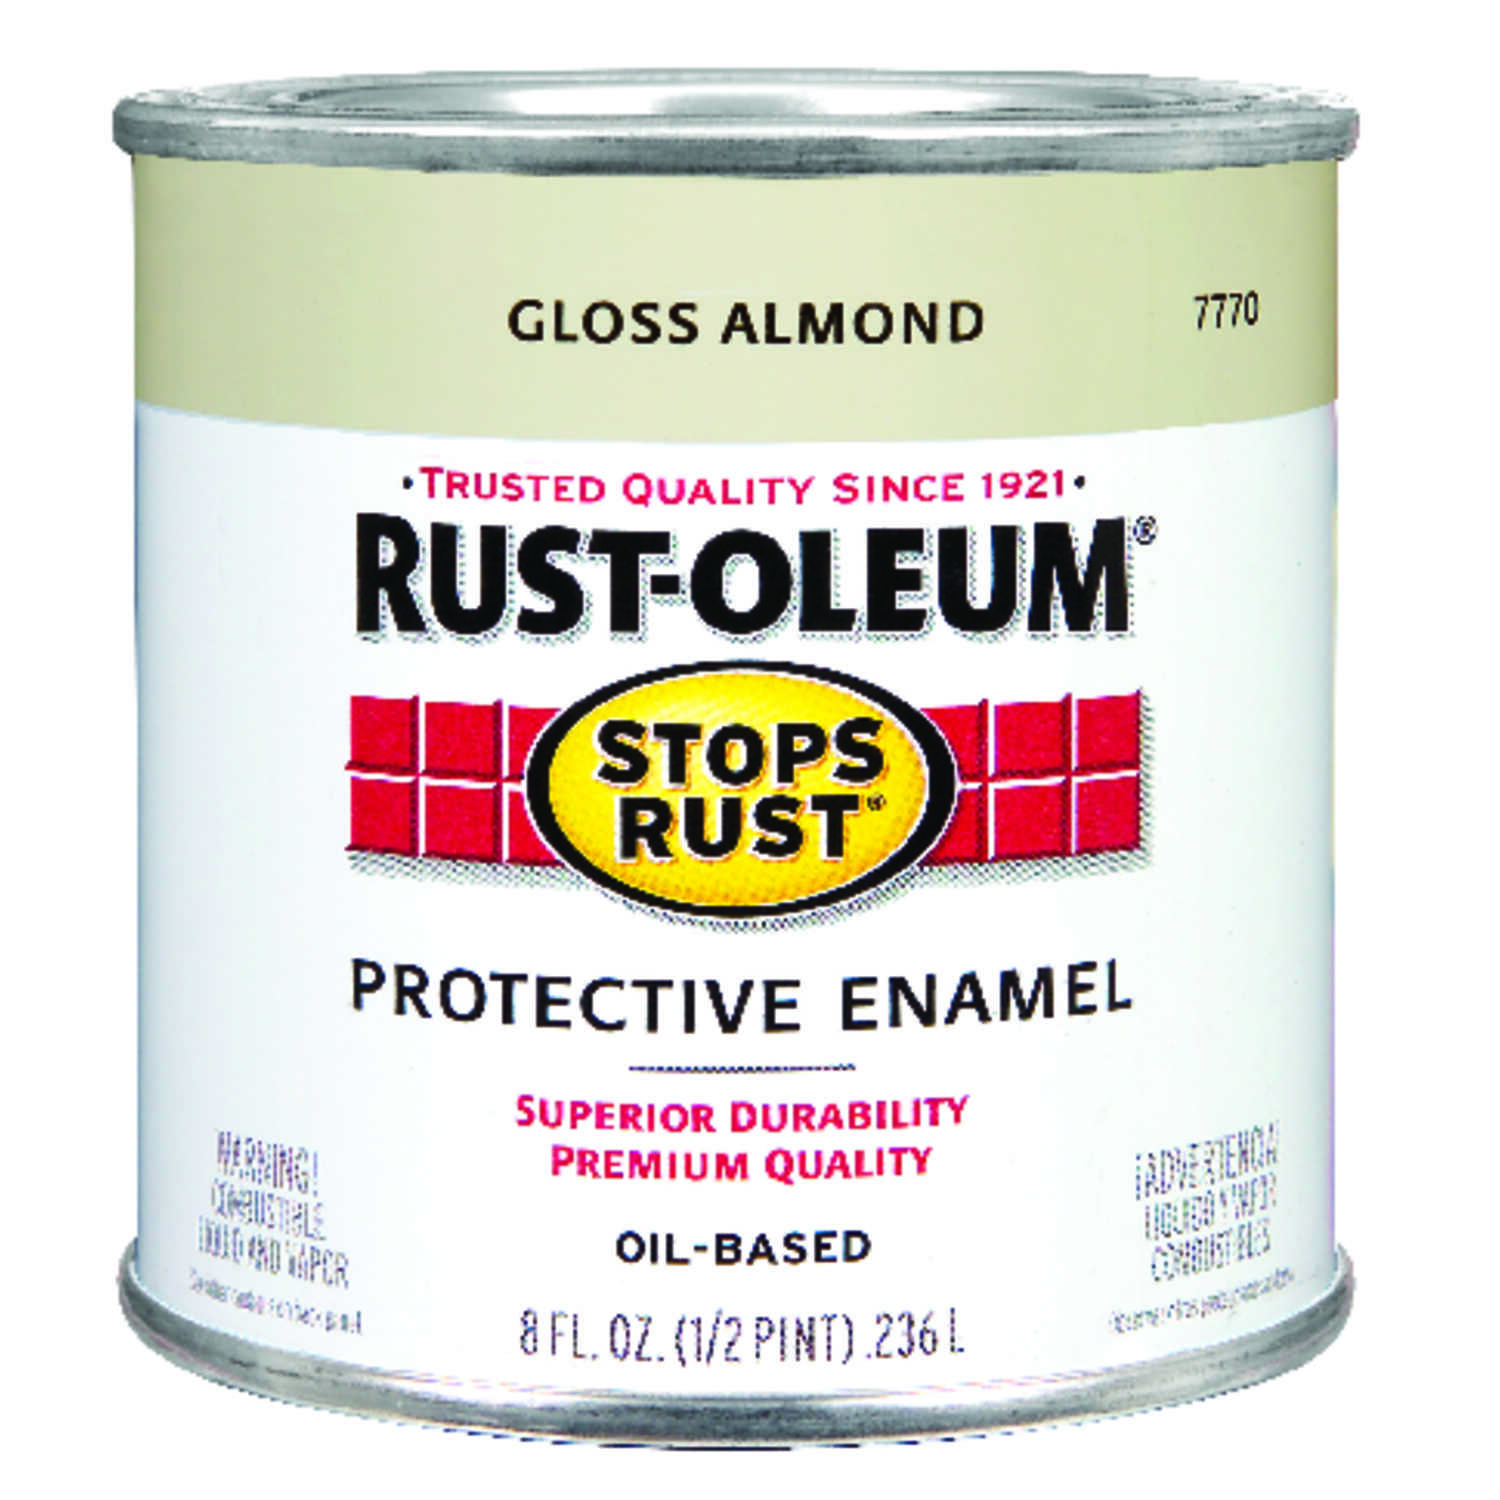 Rust-Oleum  Indoor and Outdoor  Gloss  Almond  Protective Enamel  0.5 pt.